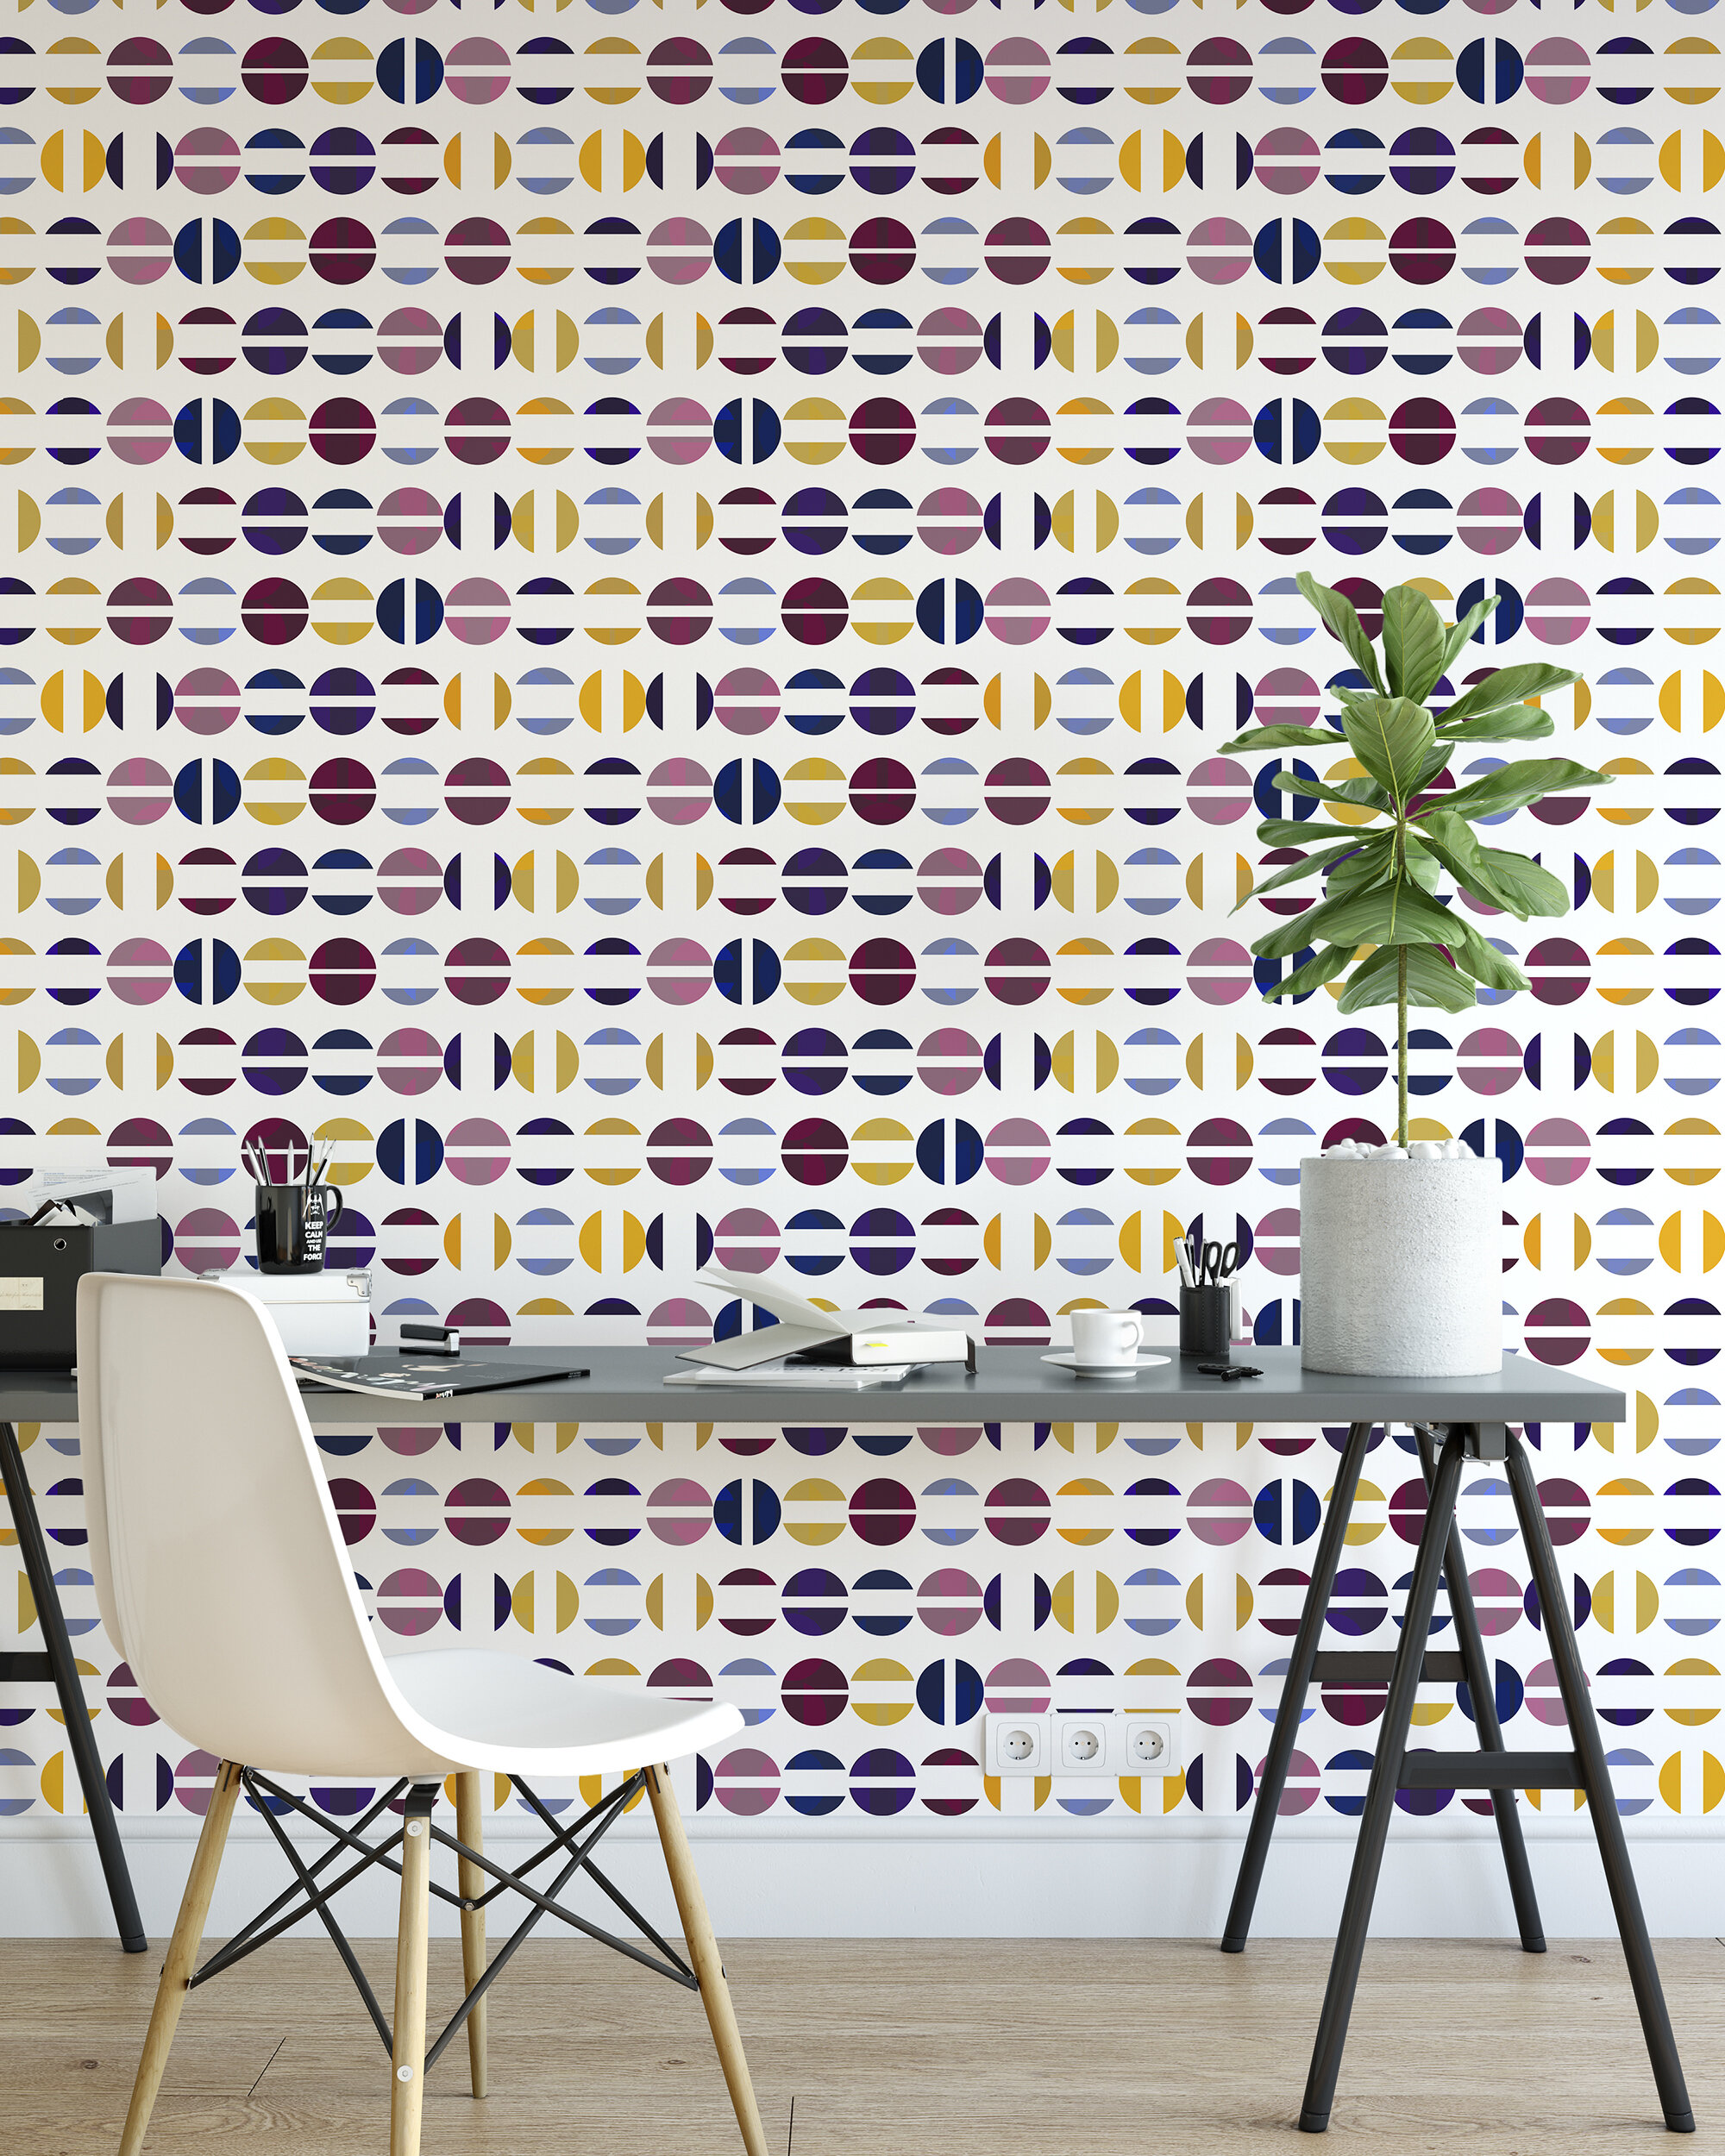 Ivy Bronx Sistrunk Fragment 16 5 L X 24 W Wallpaper Roll Wayfair